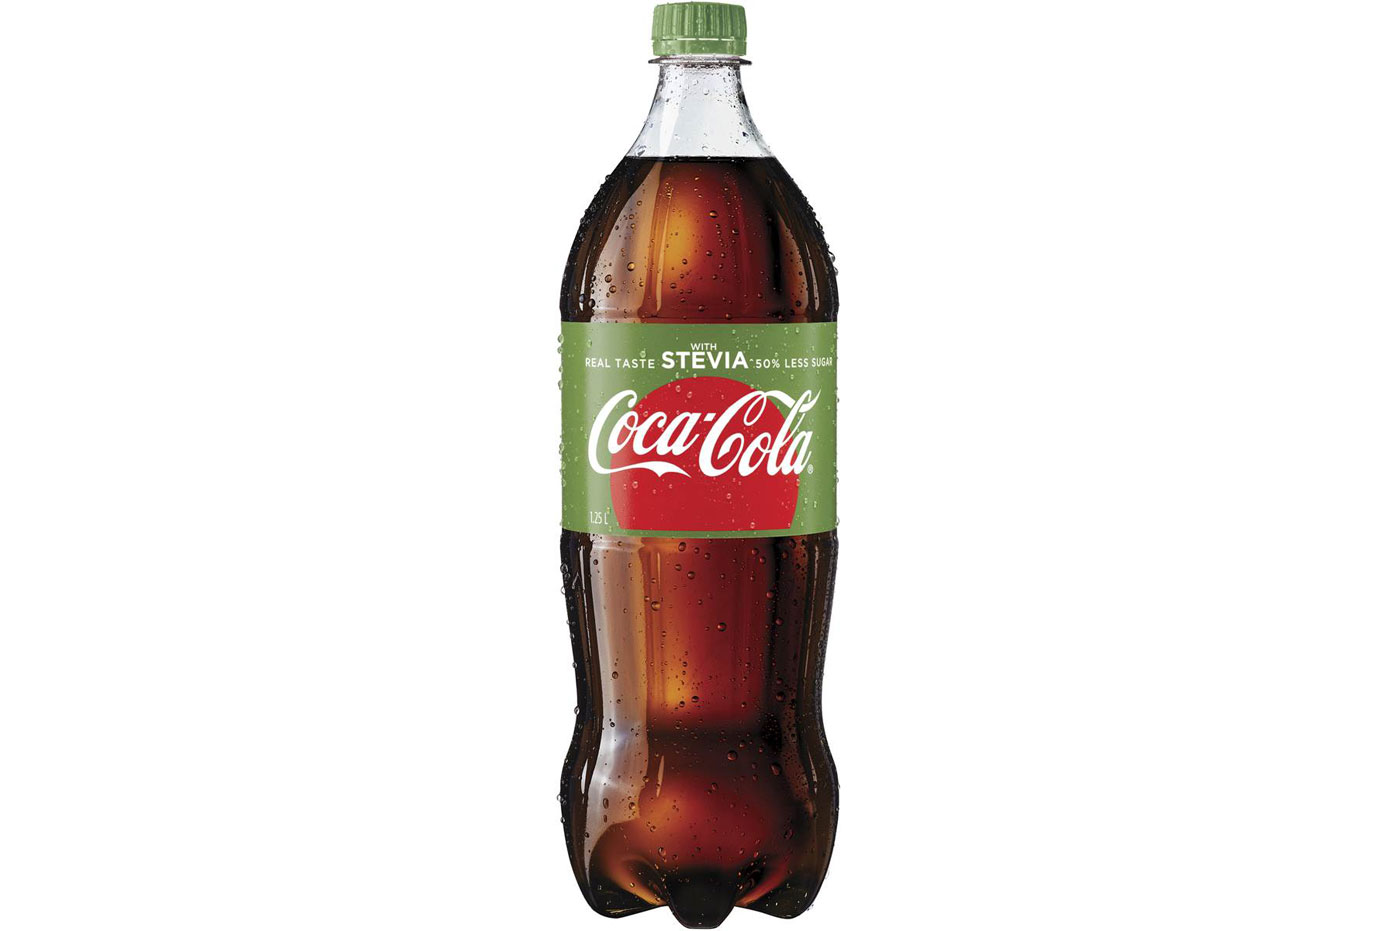 Coca-Cola with Stevia: 5g sugar per 100ml